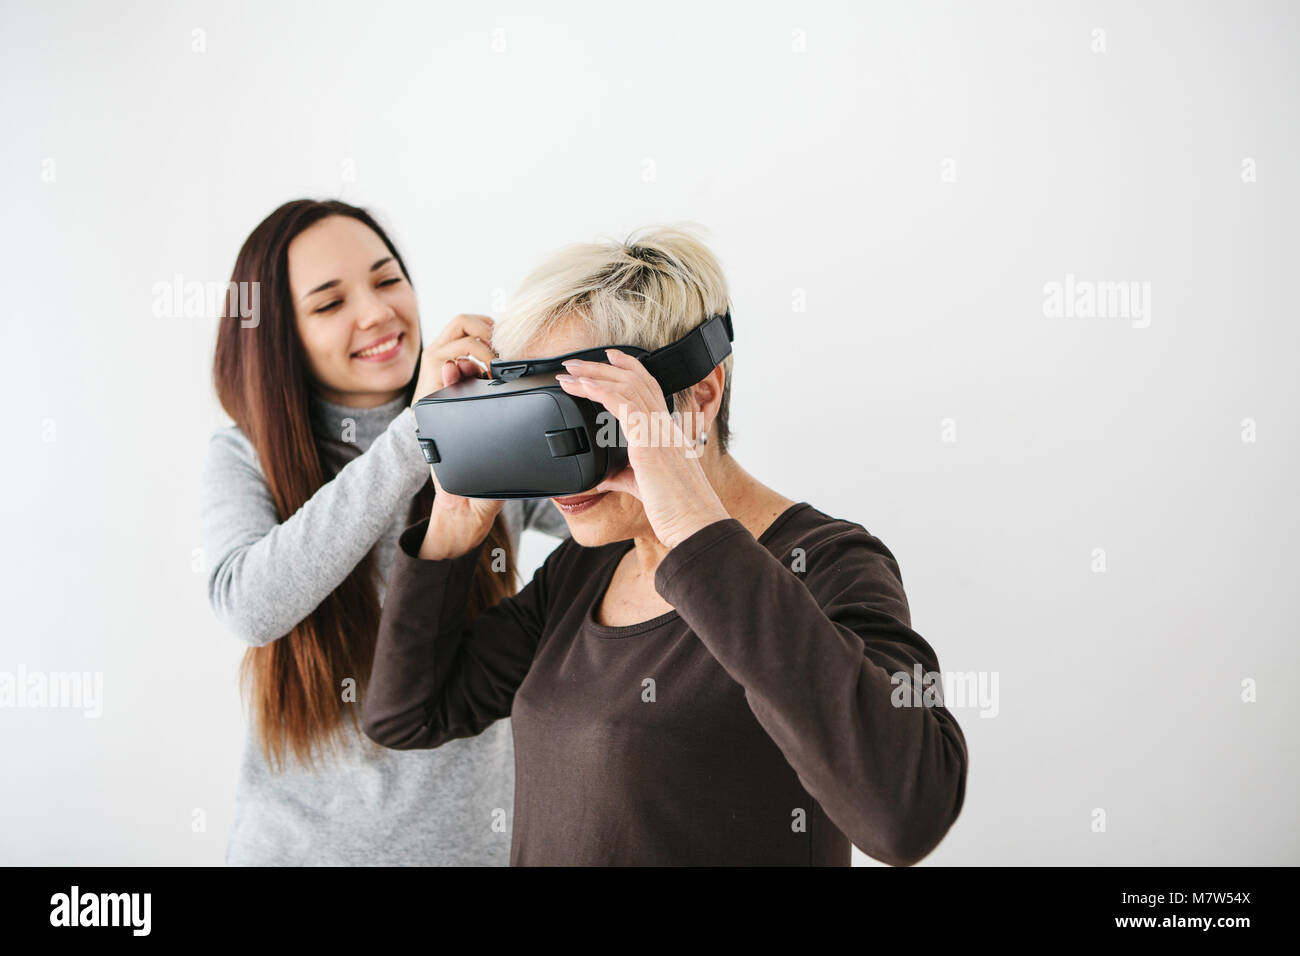 A young girl explains to an elderly woman how to use virtual reality glasses. The older generation and new technologies. - Stock Image